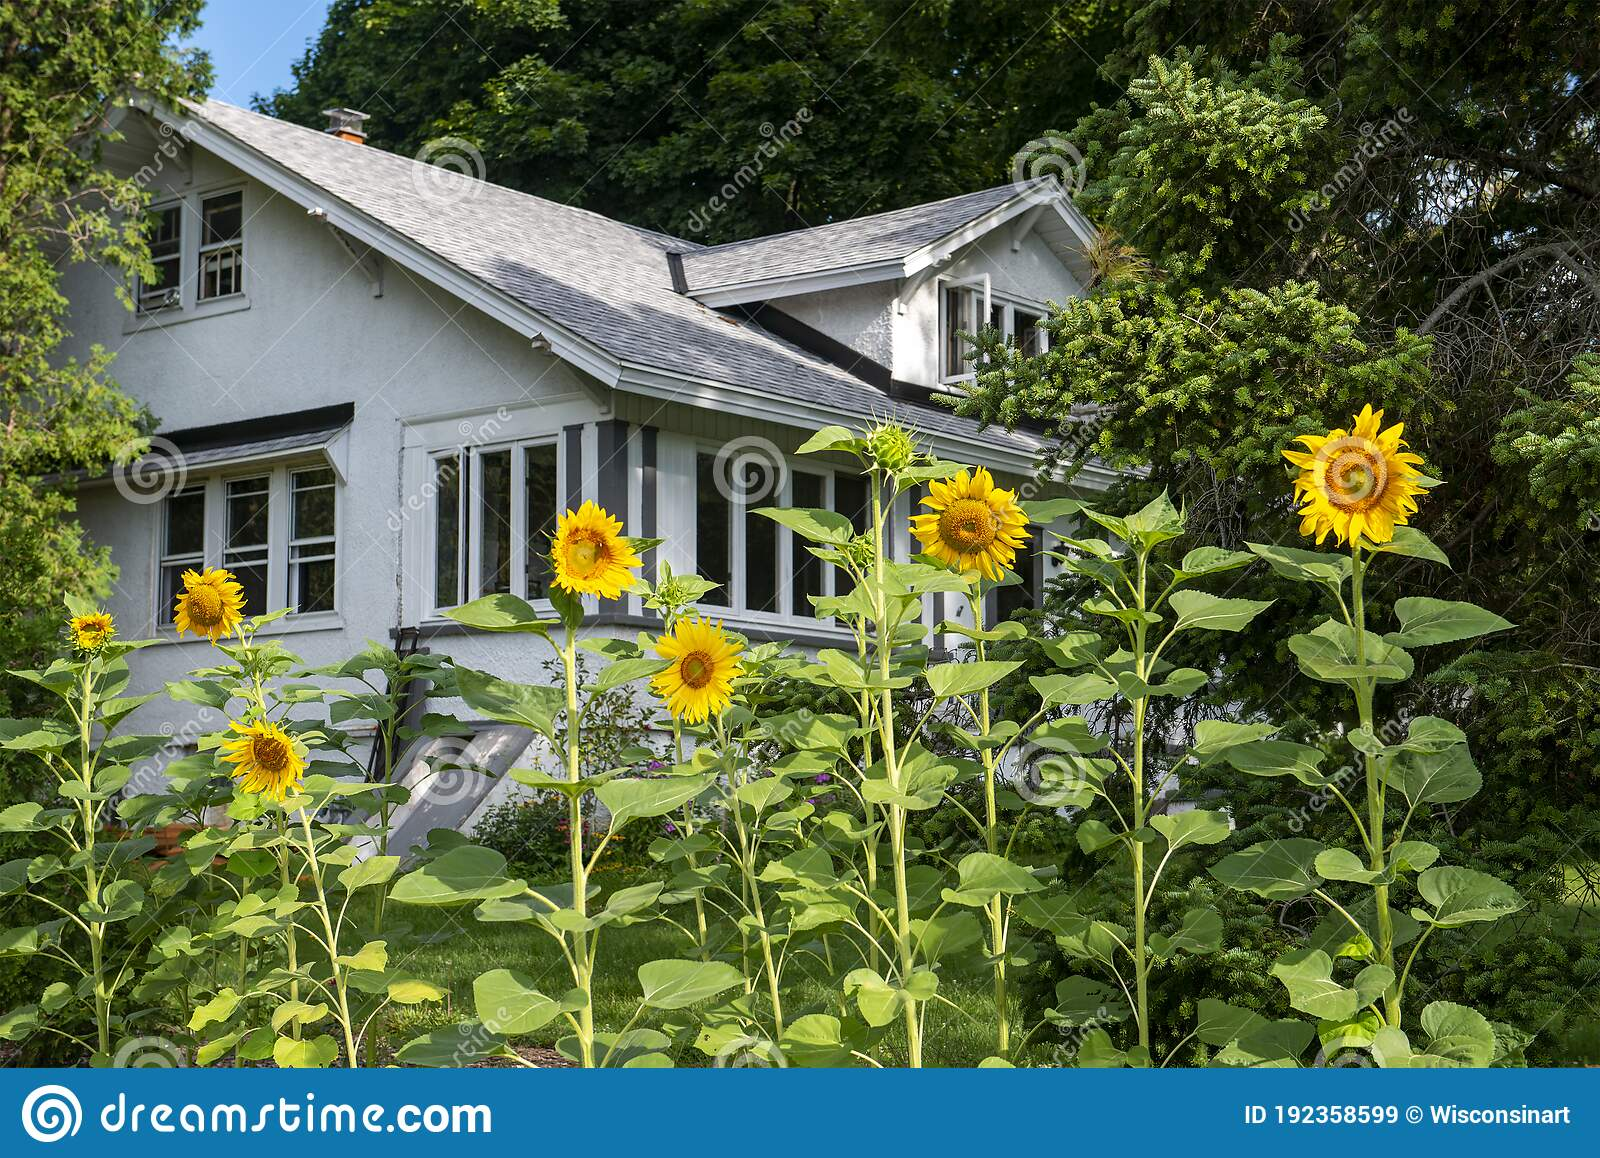 29 788 Country Farmhouse Photos Free Royalty Free Stock Photos From Dreamstime